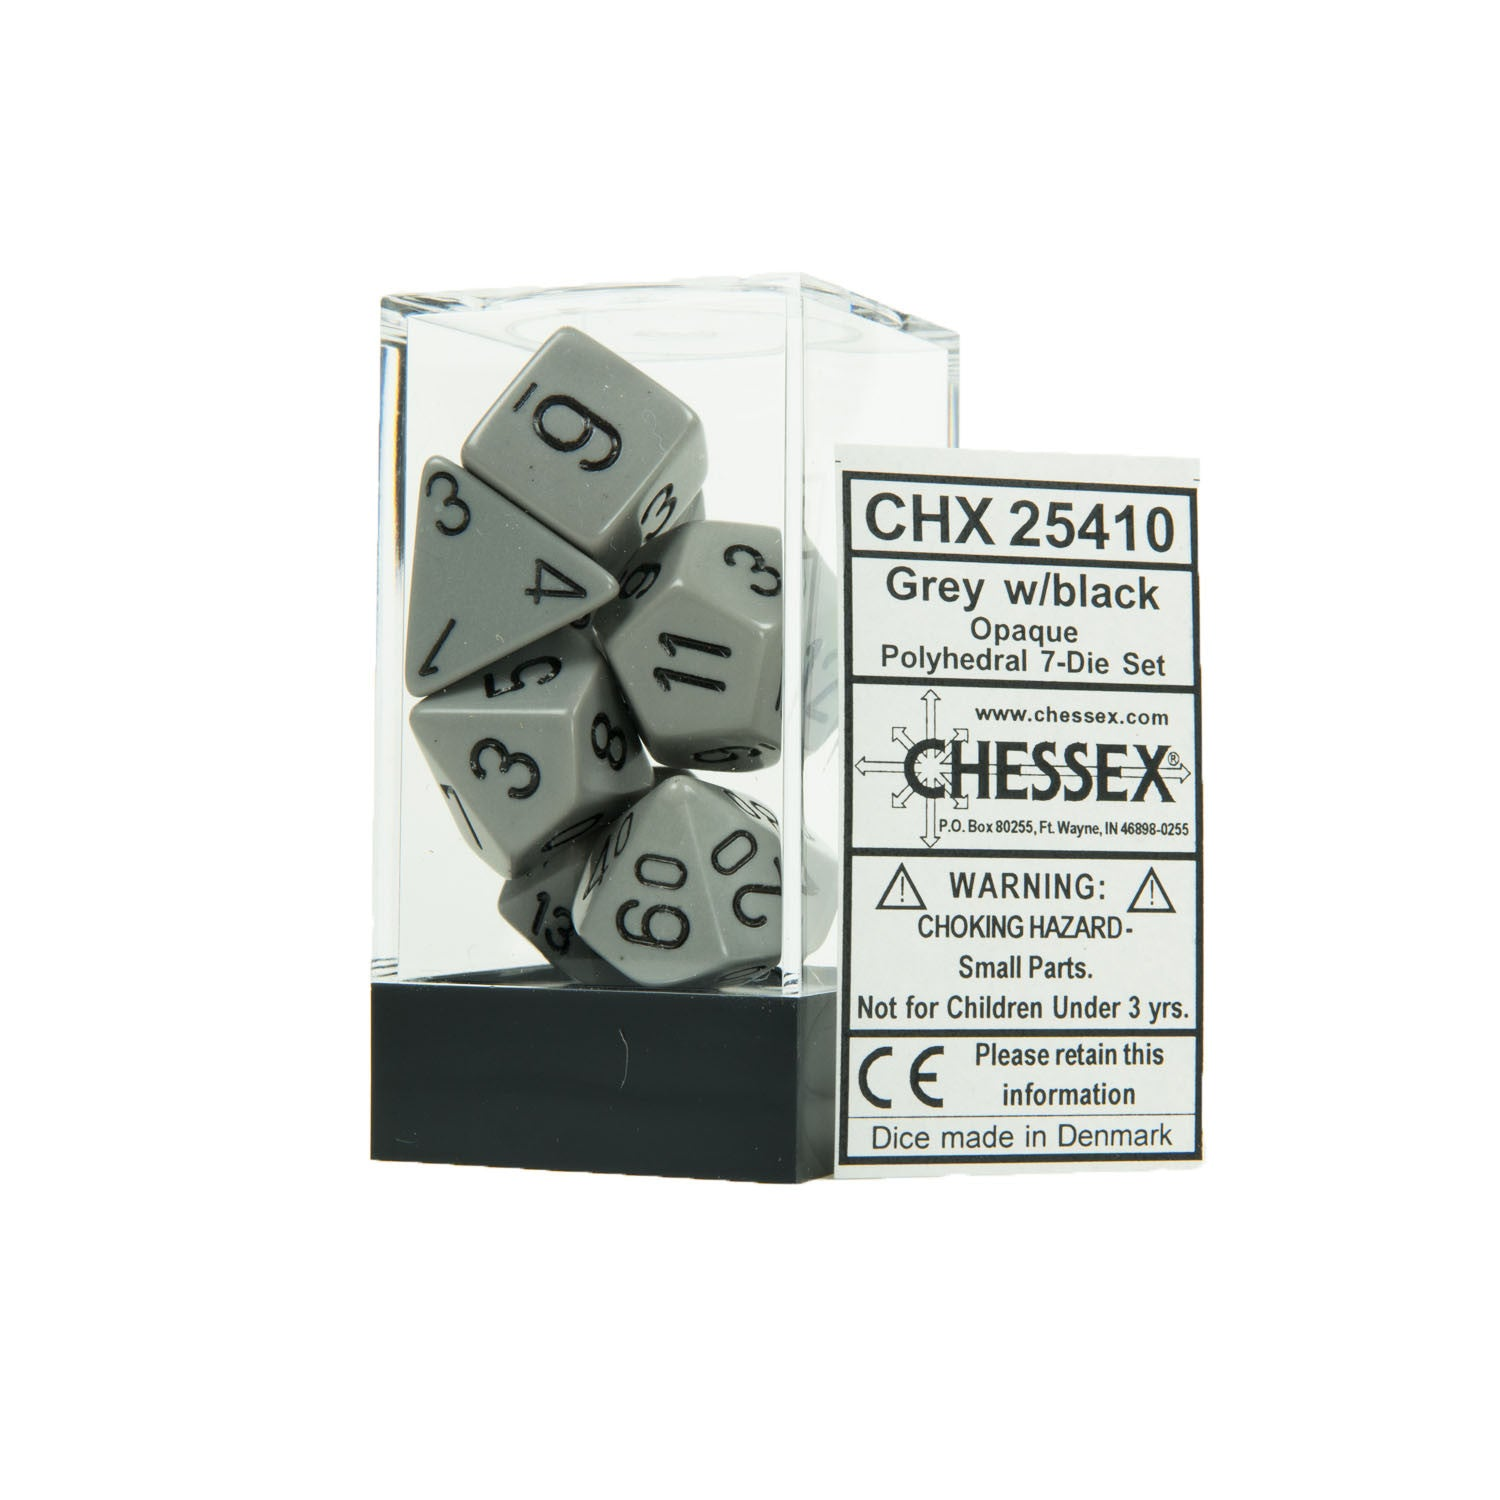 Chessex CHX25410 Opaque Grey w/black Polyhedral Dice Set